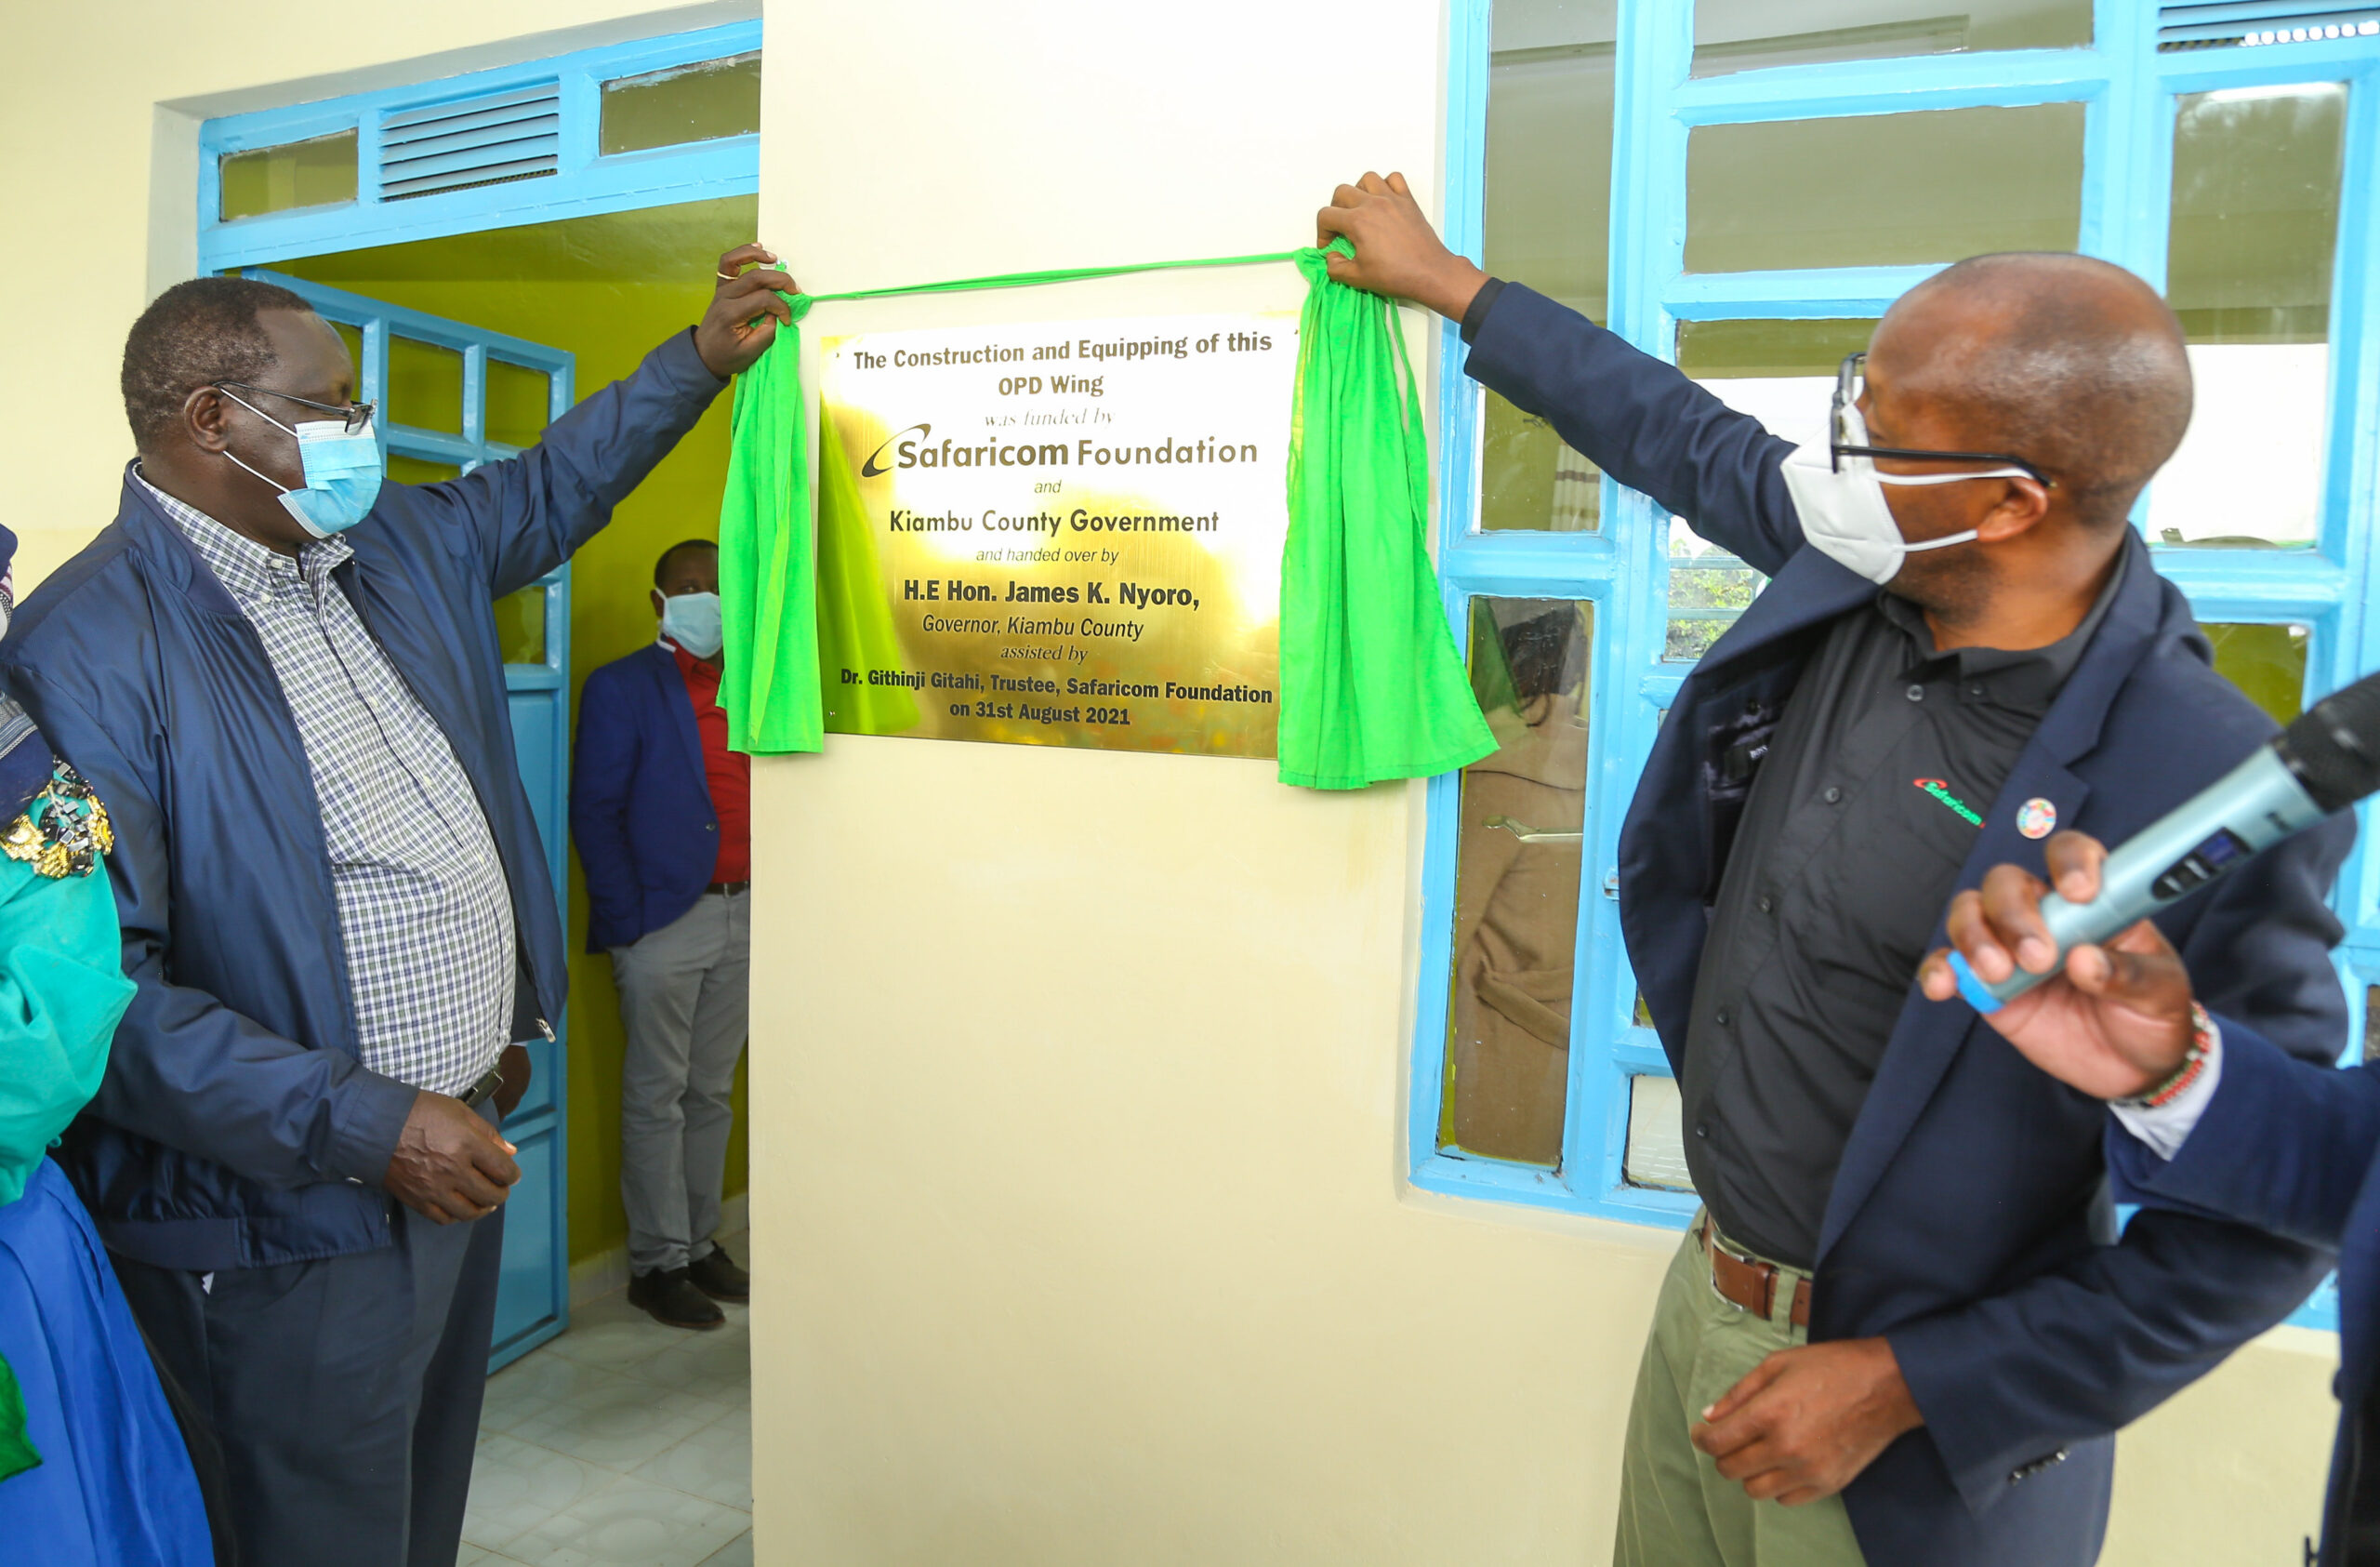 Safaricom Foundation Paves Way for Rironi Health Centre Outpatient Wing